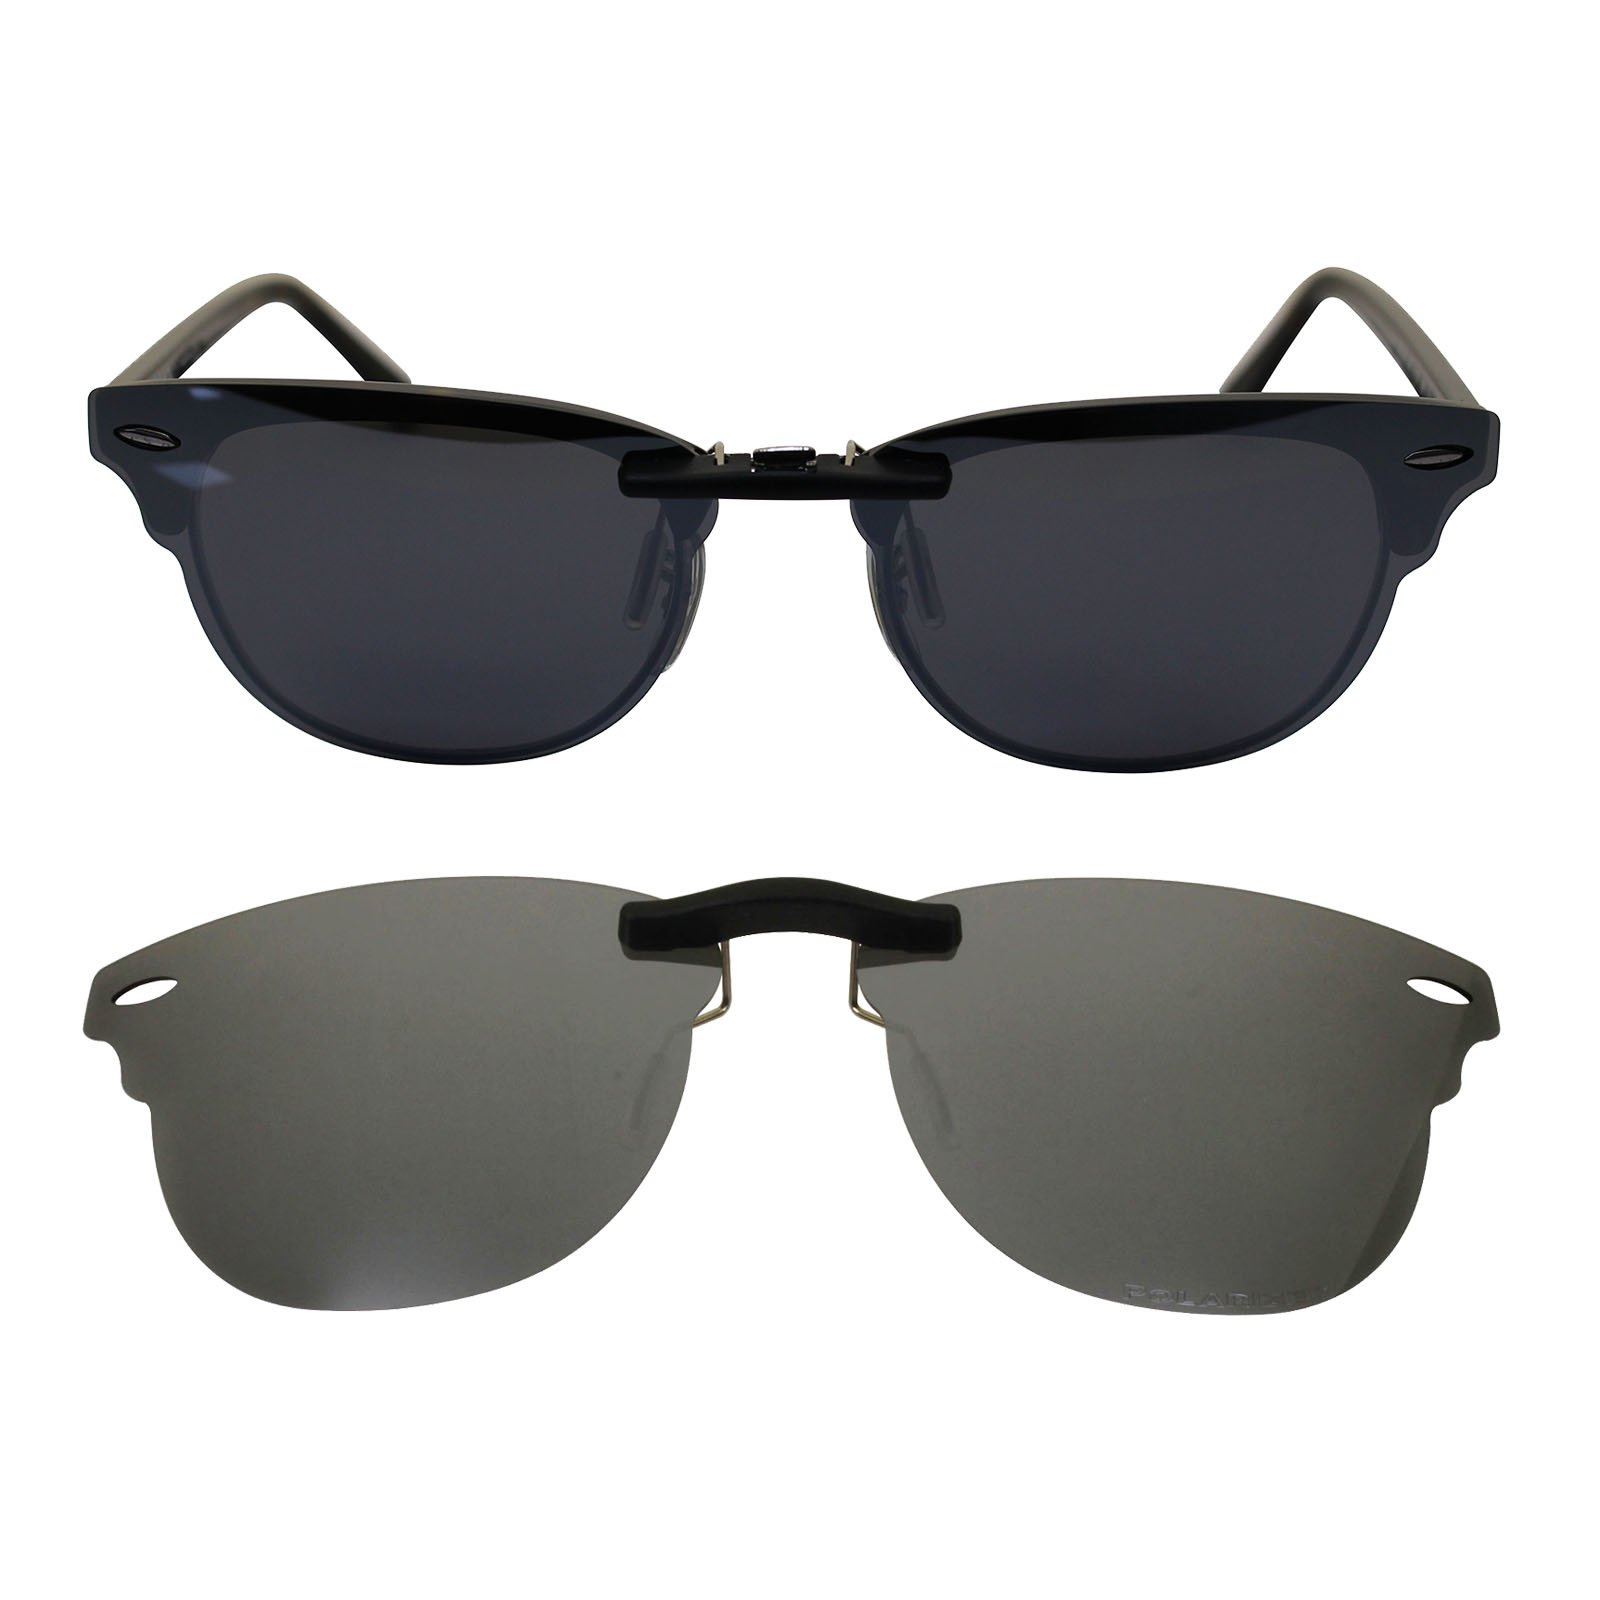 Ogeee Custom Polarized Clip On Sunglasses for Ray-Ban Clubmaster RB5154 (RX5154) 51-21-145 Silver by oGeee